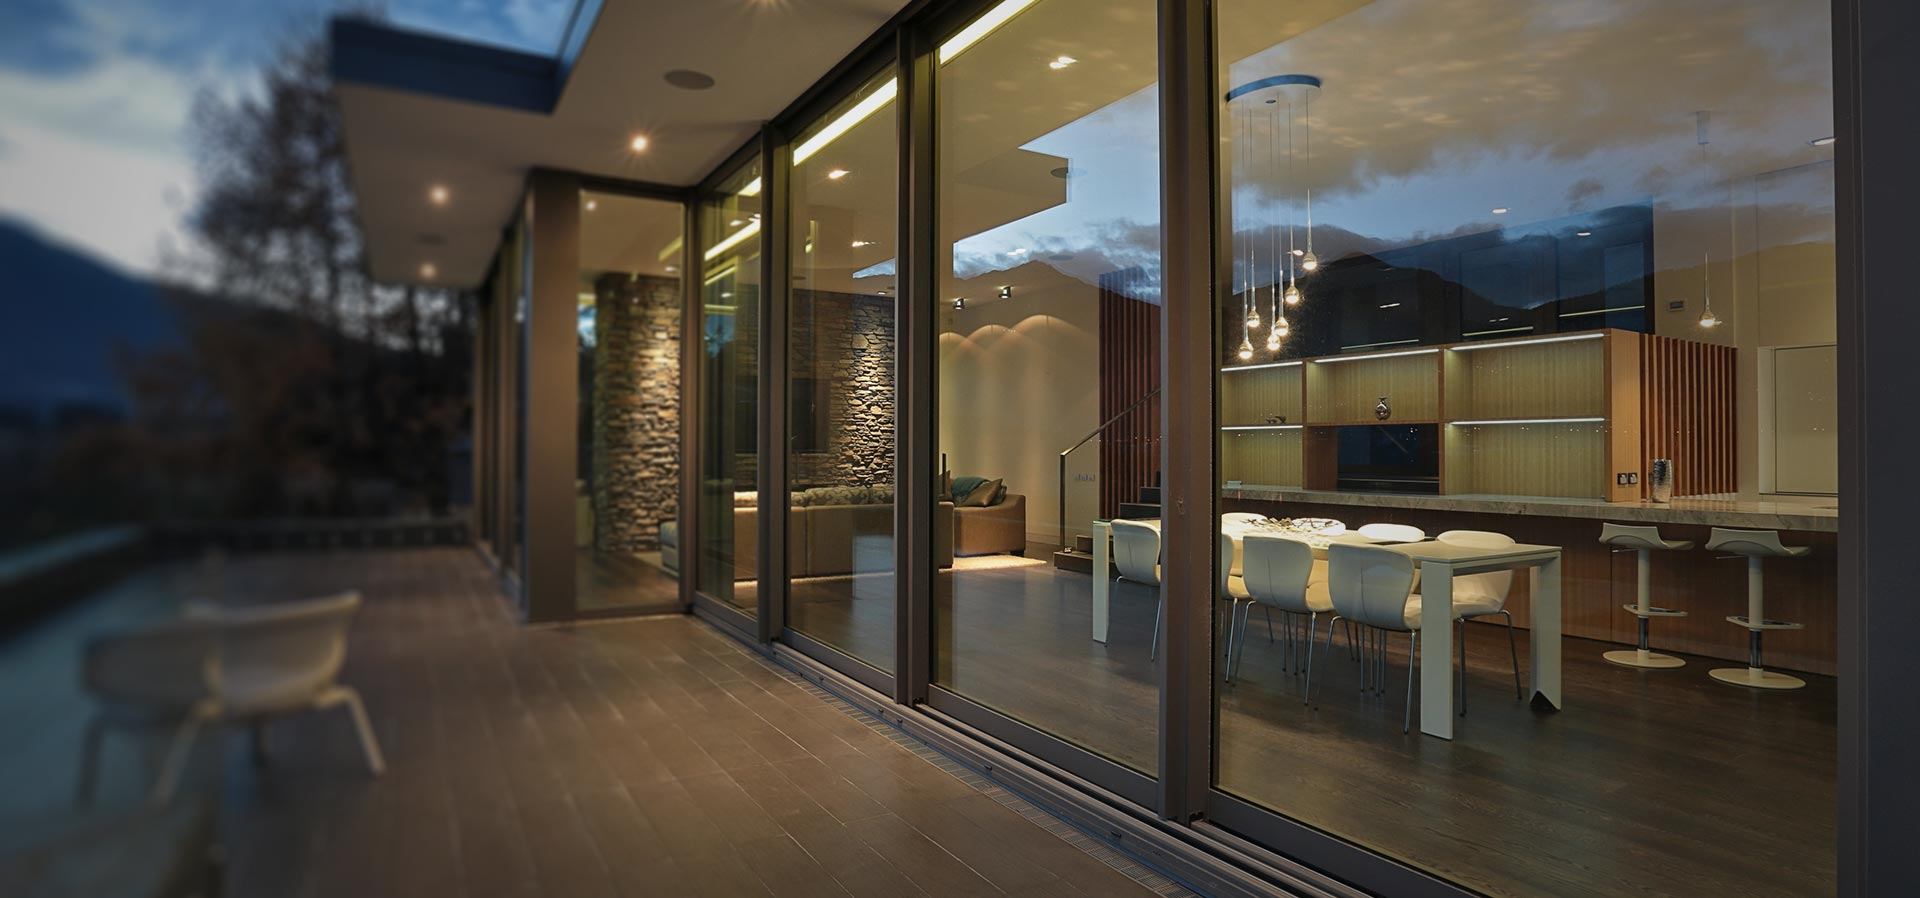 Large span of sliding aluminium patio doors with large glass area which provide a modern contemporary view